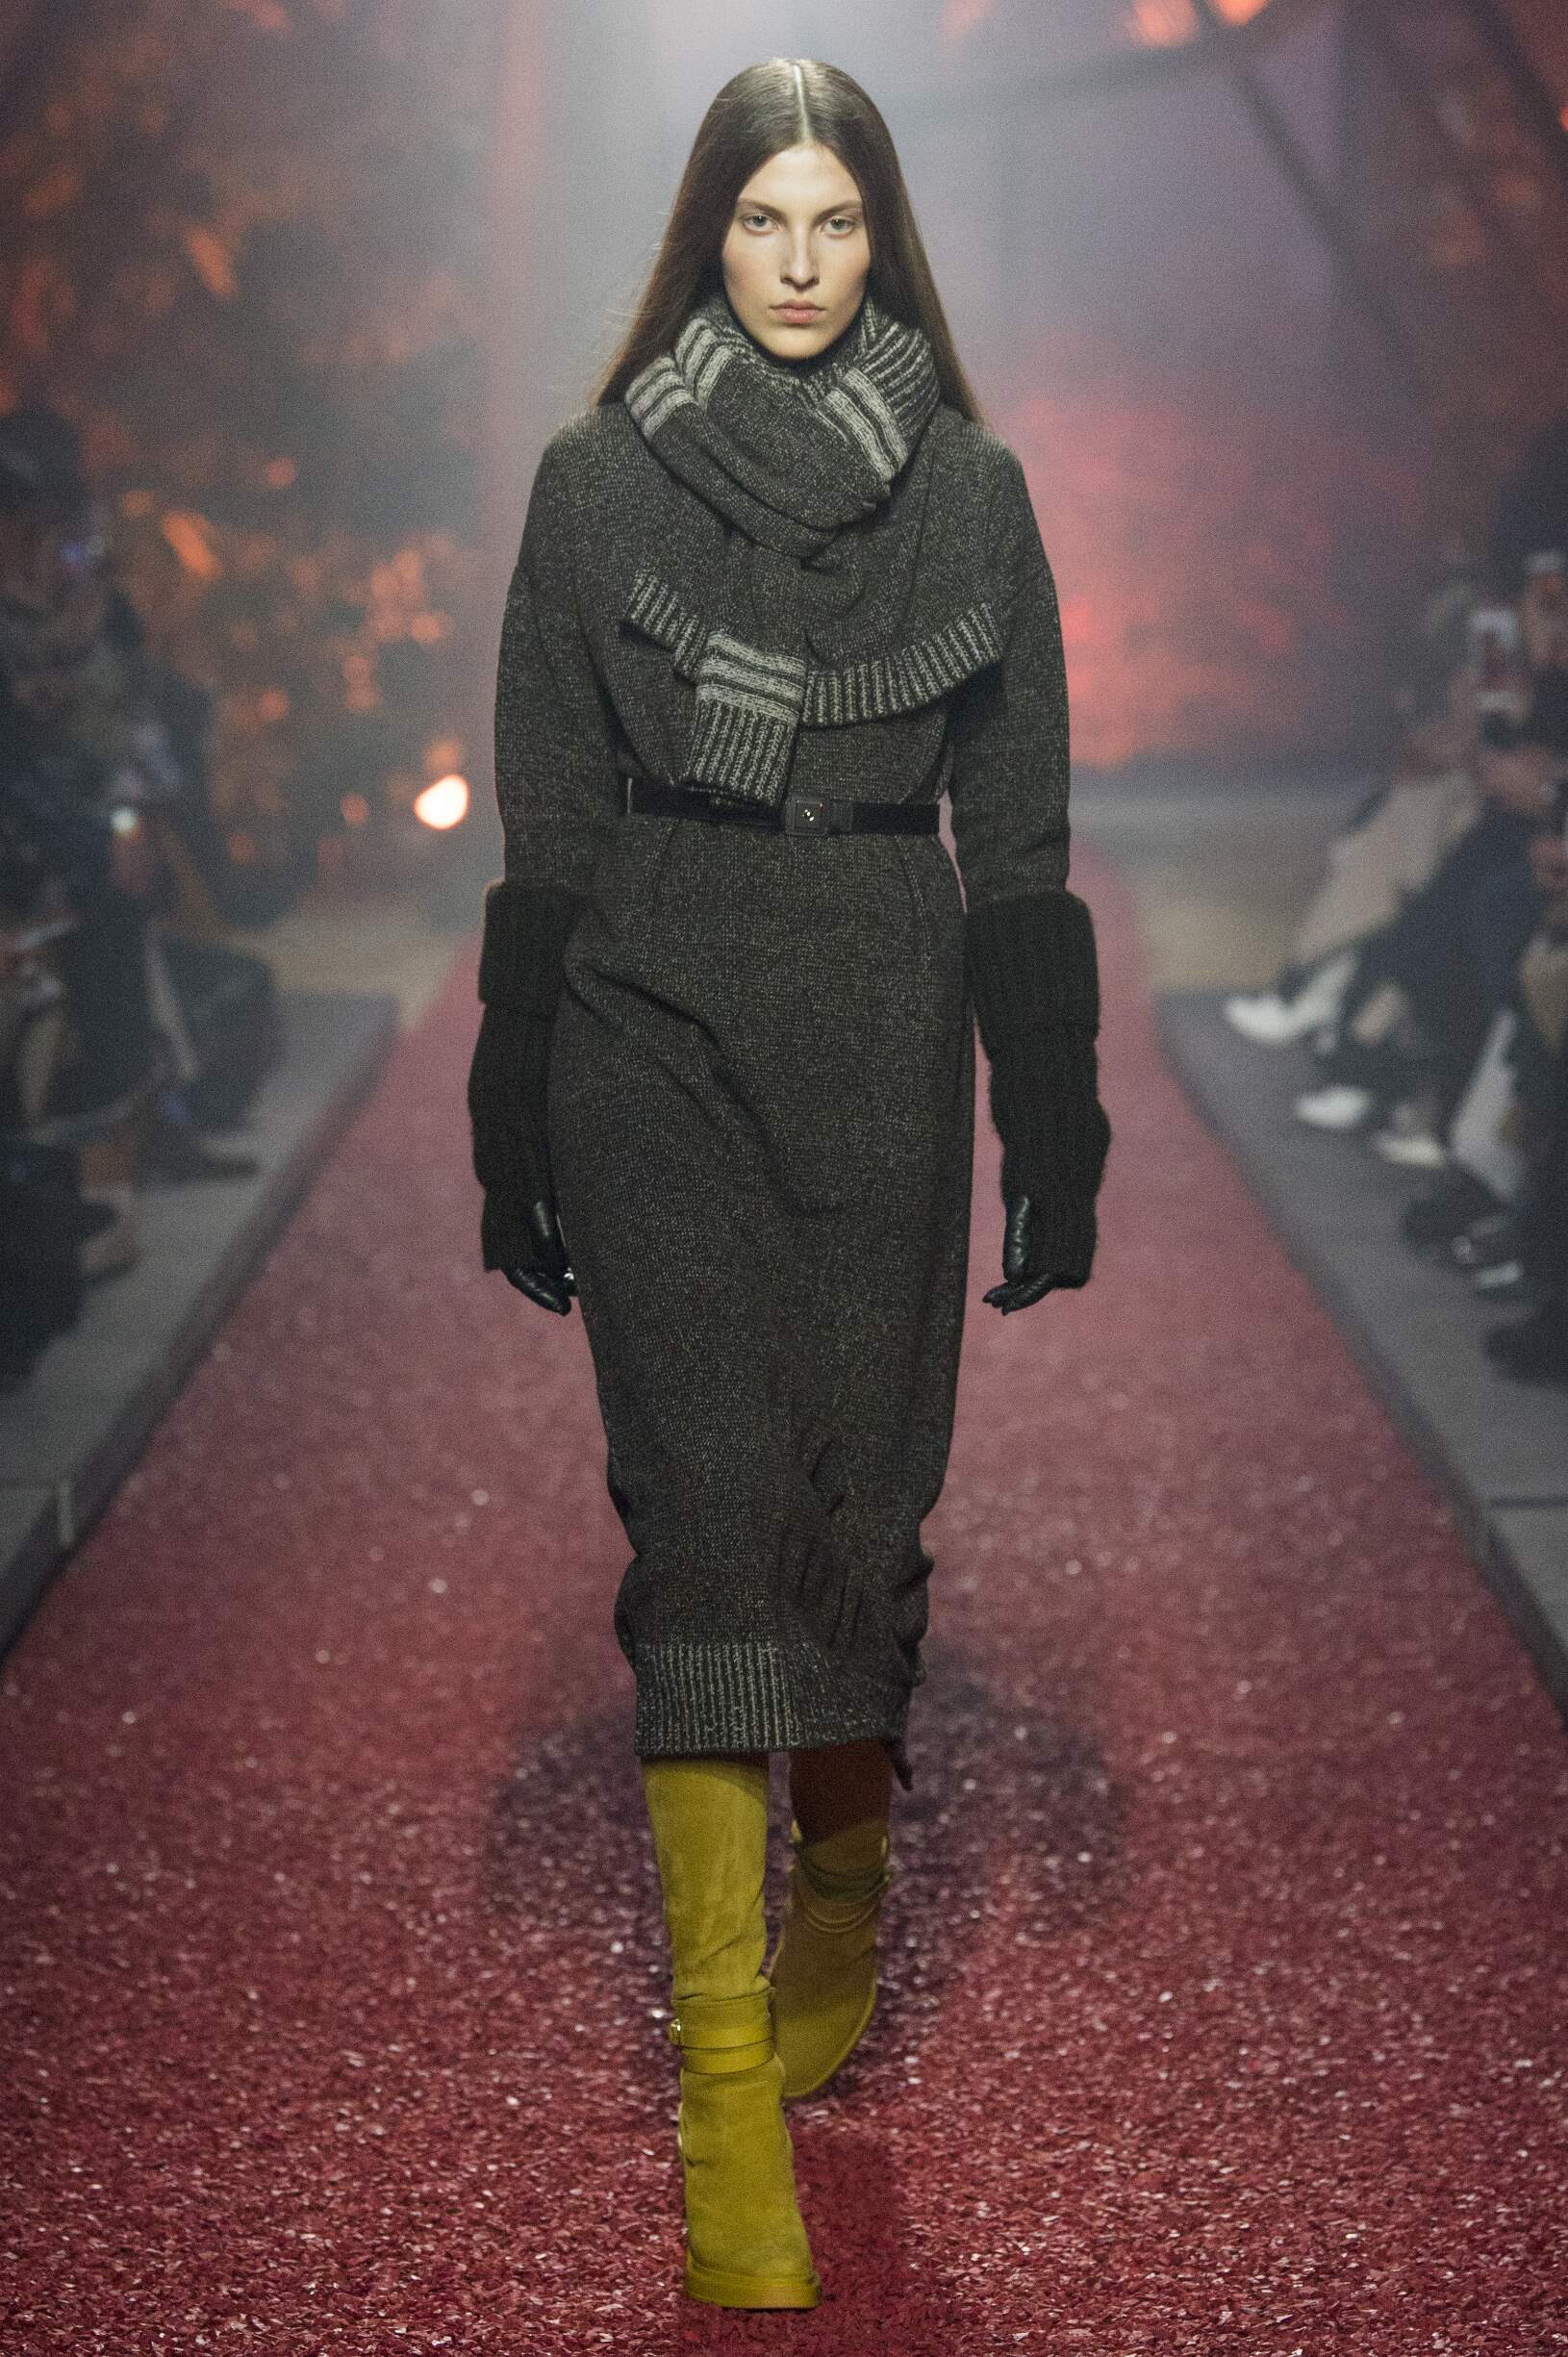 HERMÈS FALL WINTER 2018 WOMEN'S COLLECTION | The Skinny Beep